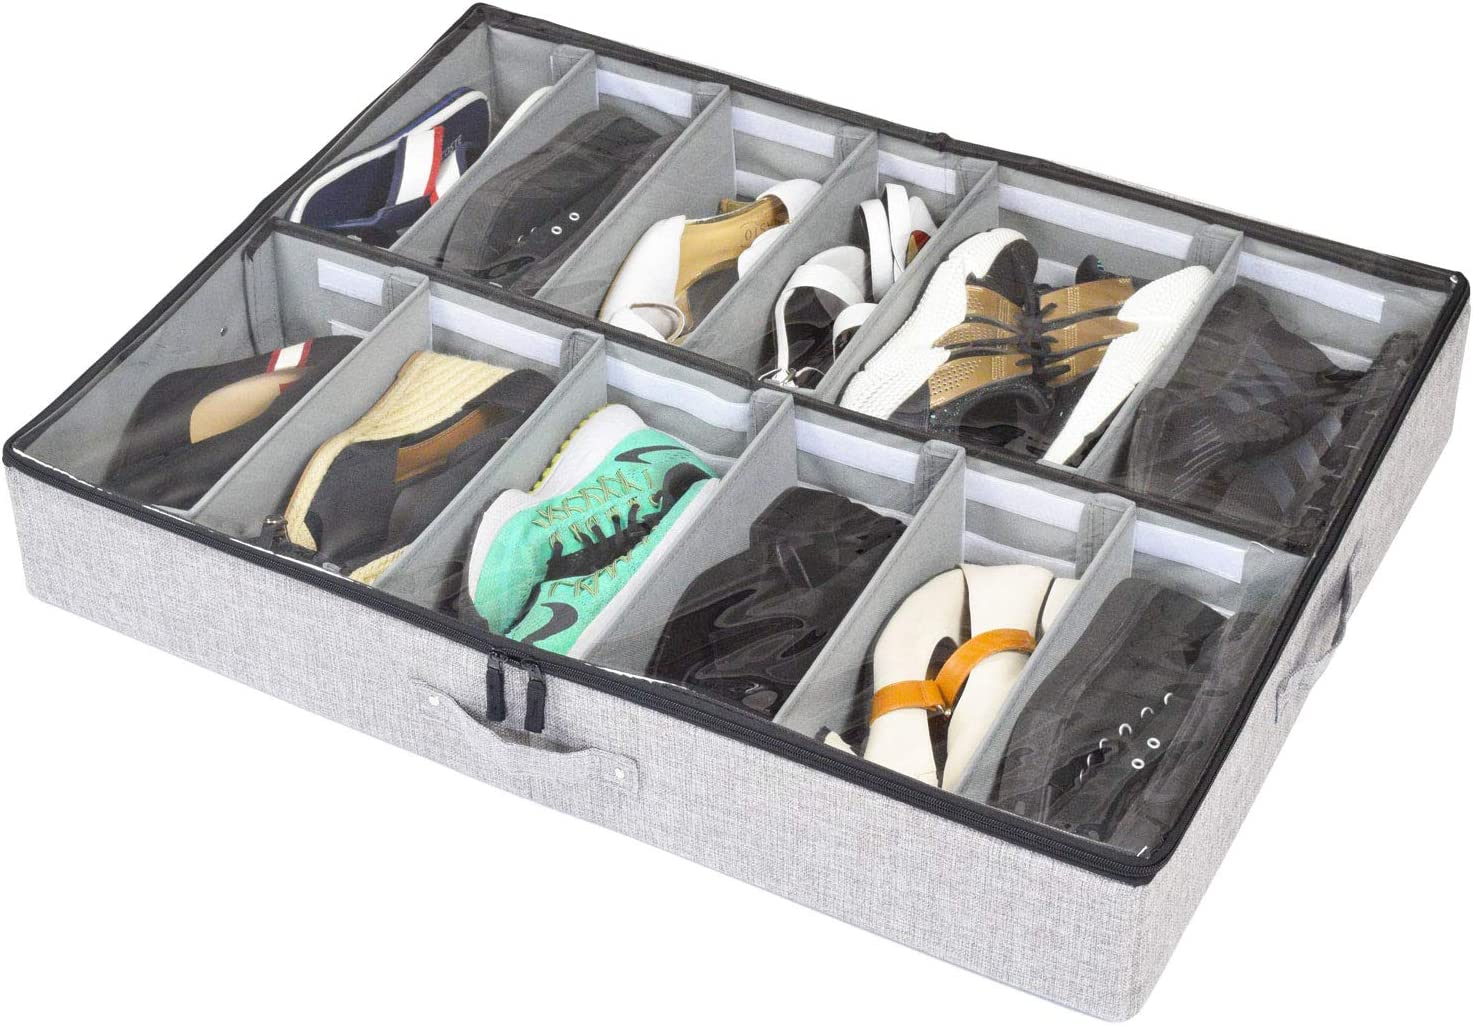 storageLAB Under Bed Shoe Storage Organizer, Adjustable Dividers - Fits Up to 12 Pairs - Underbed Storage Solution